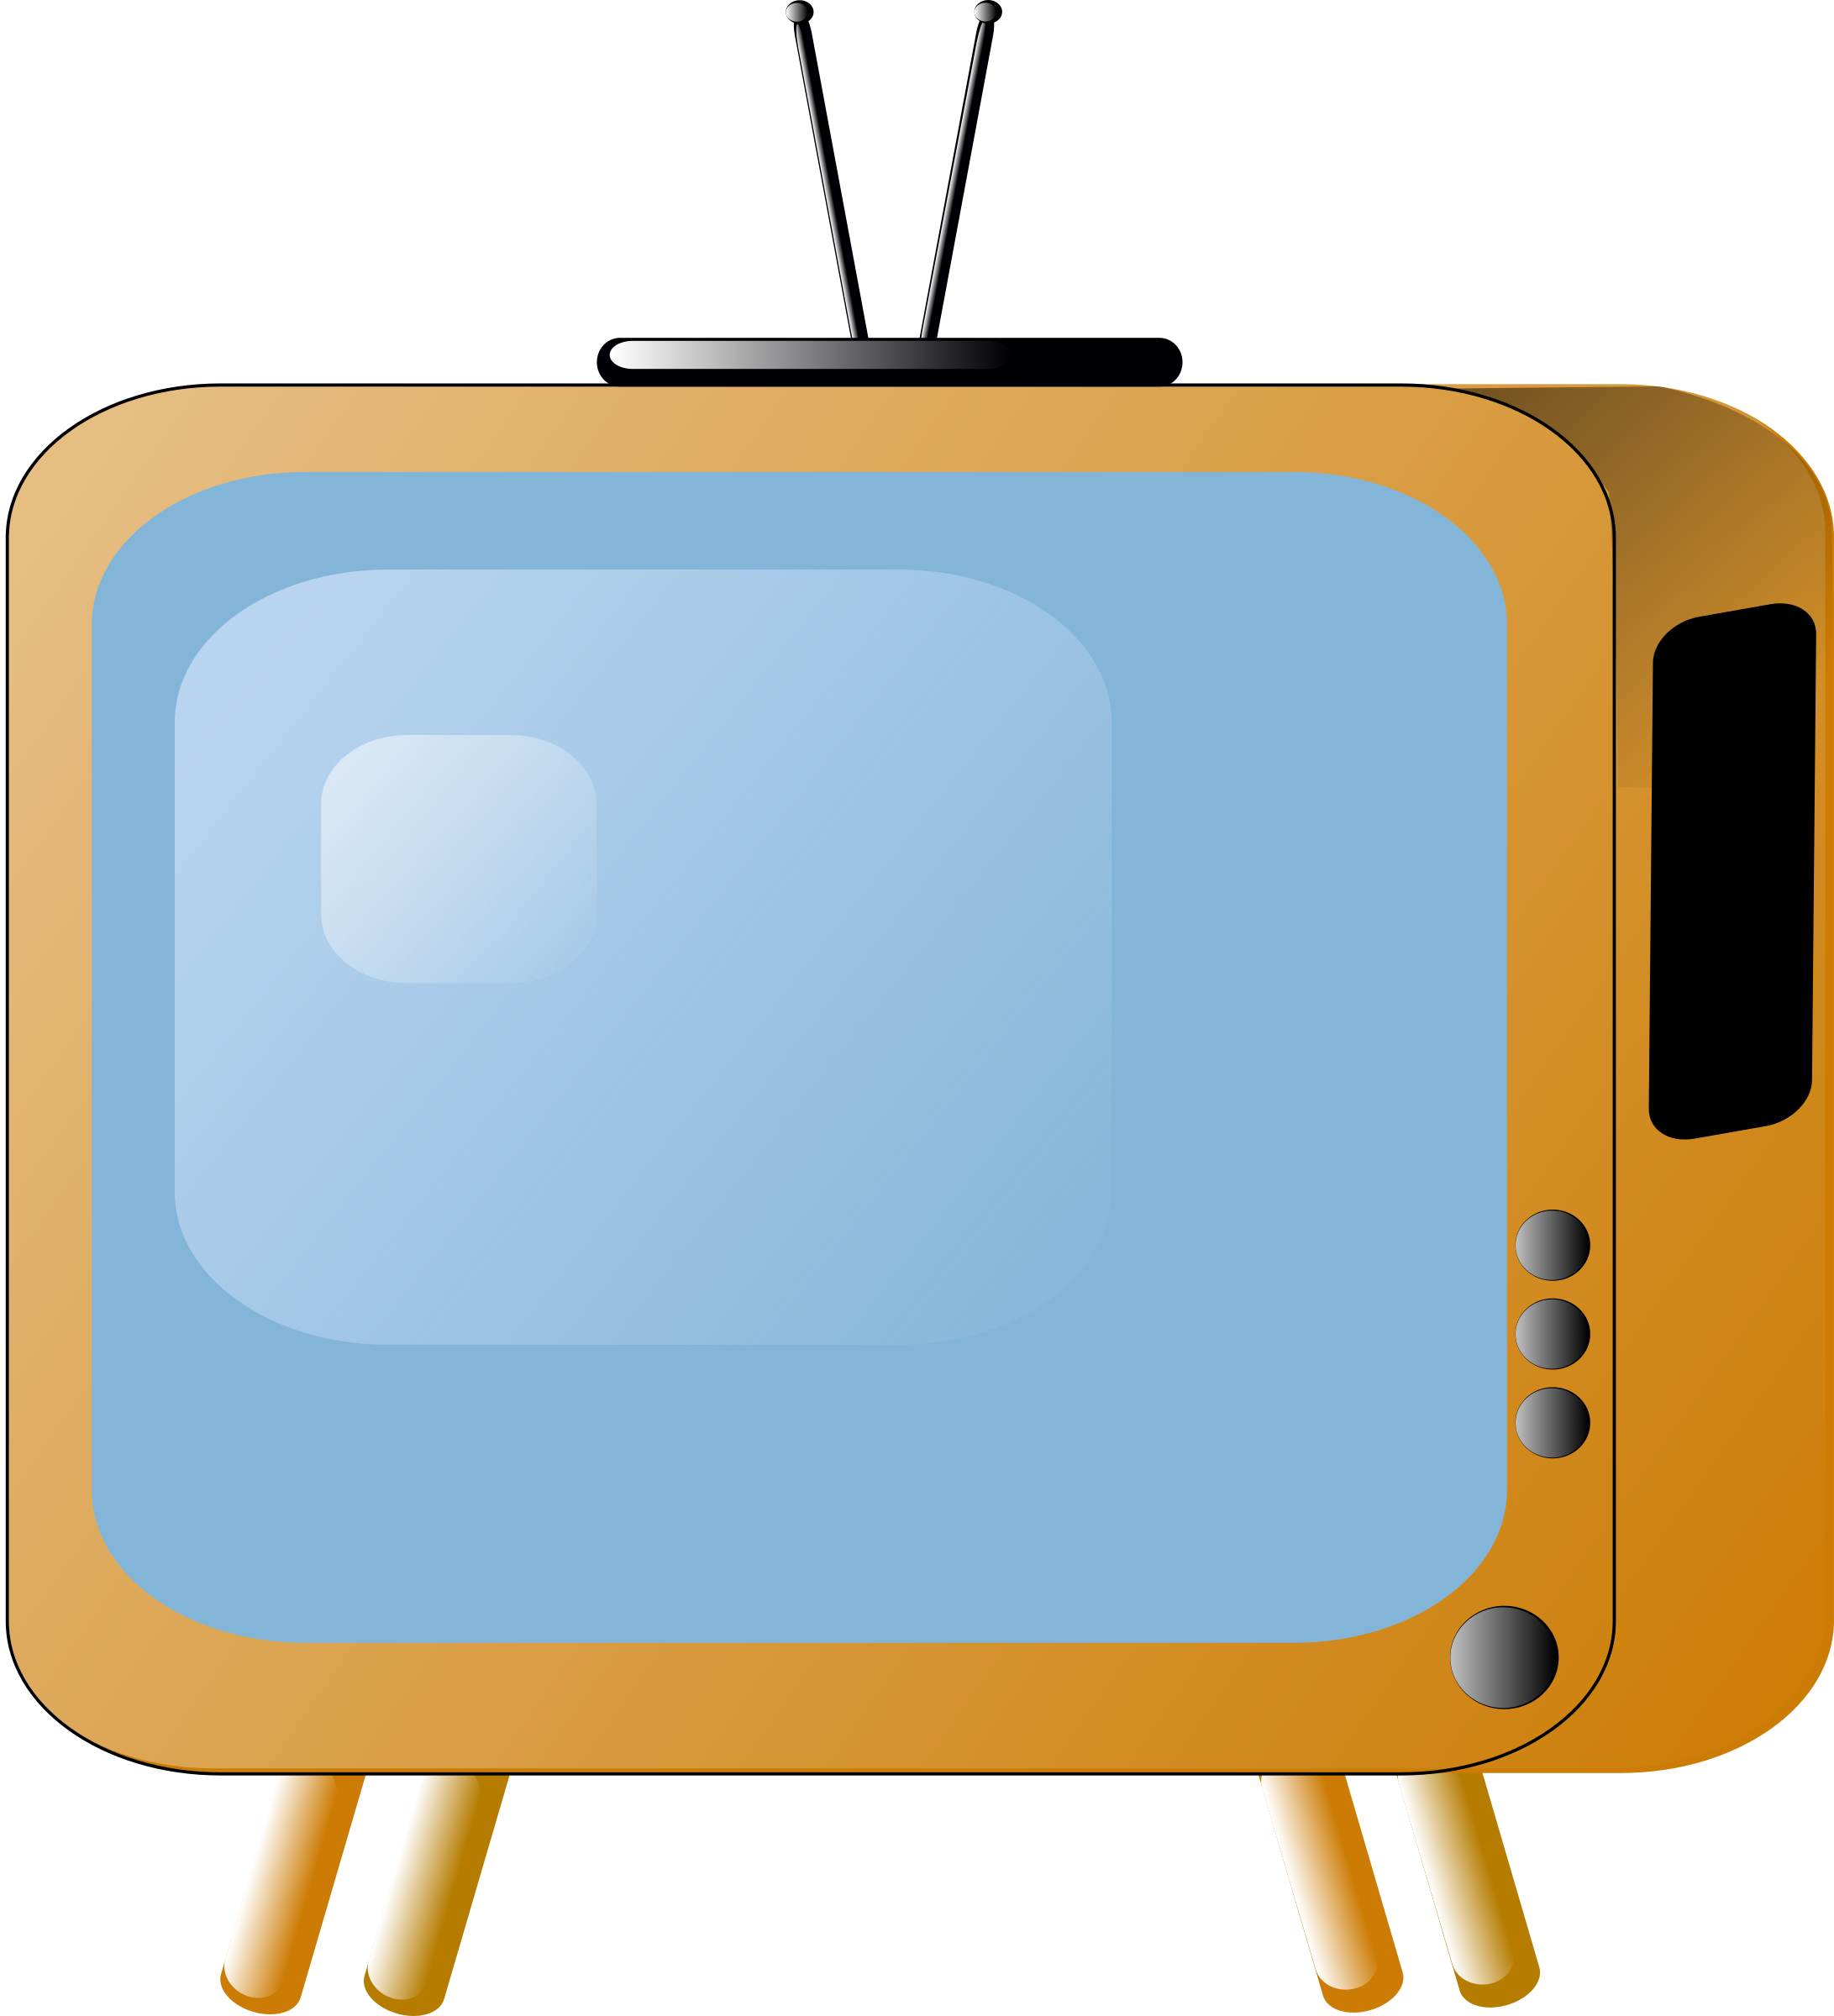 Television clipart old fashioned, Television old fashioned